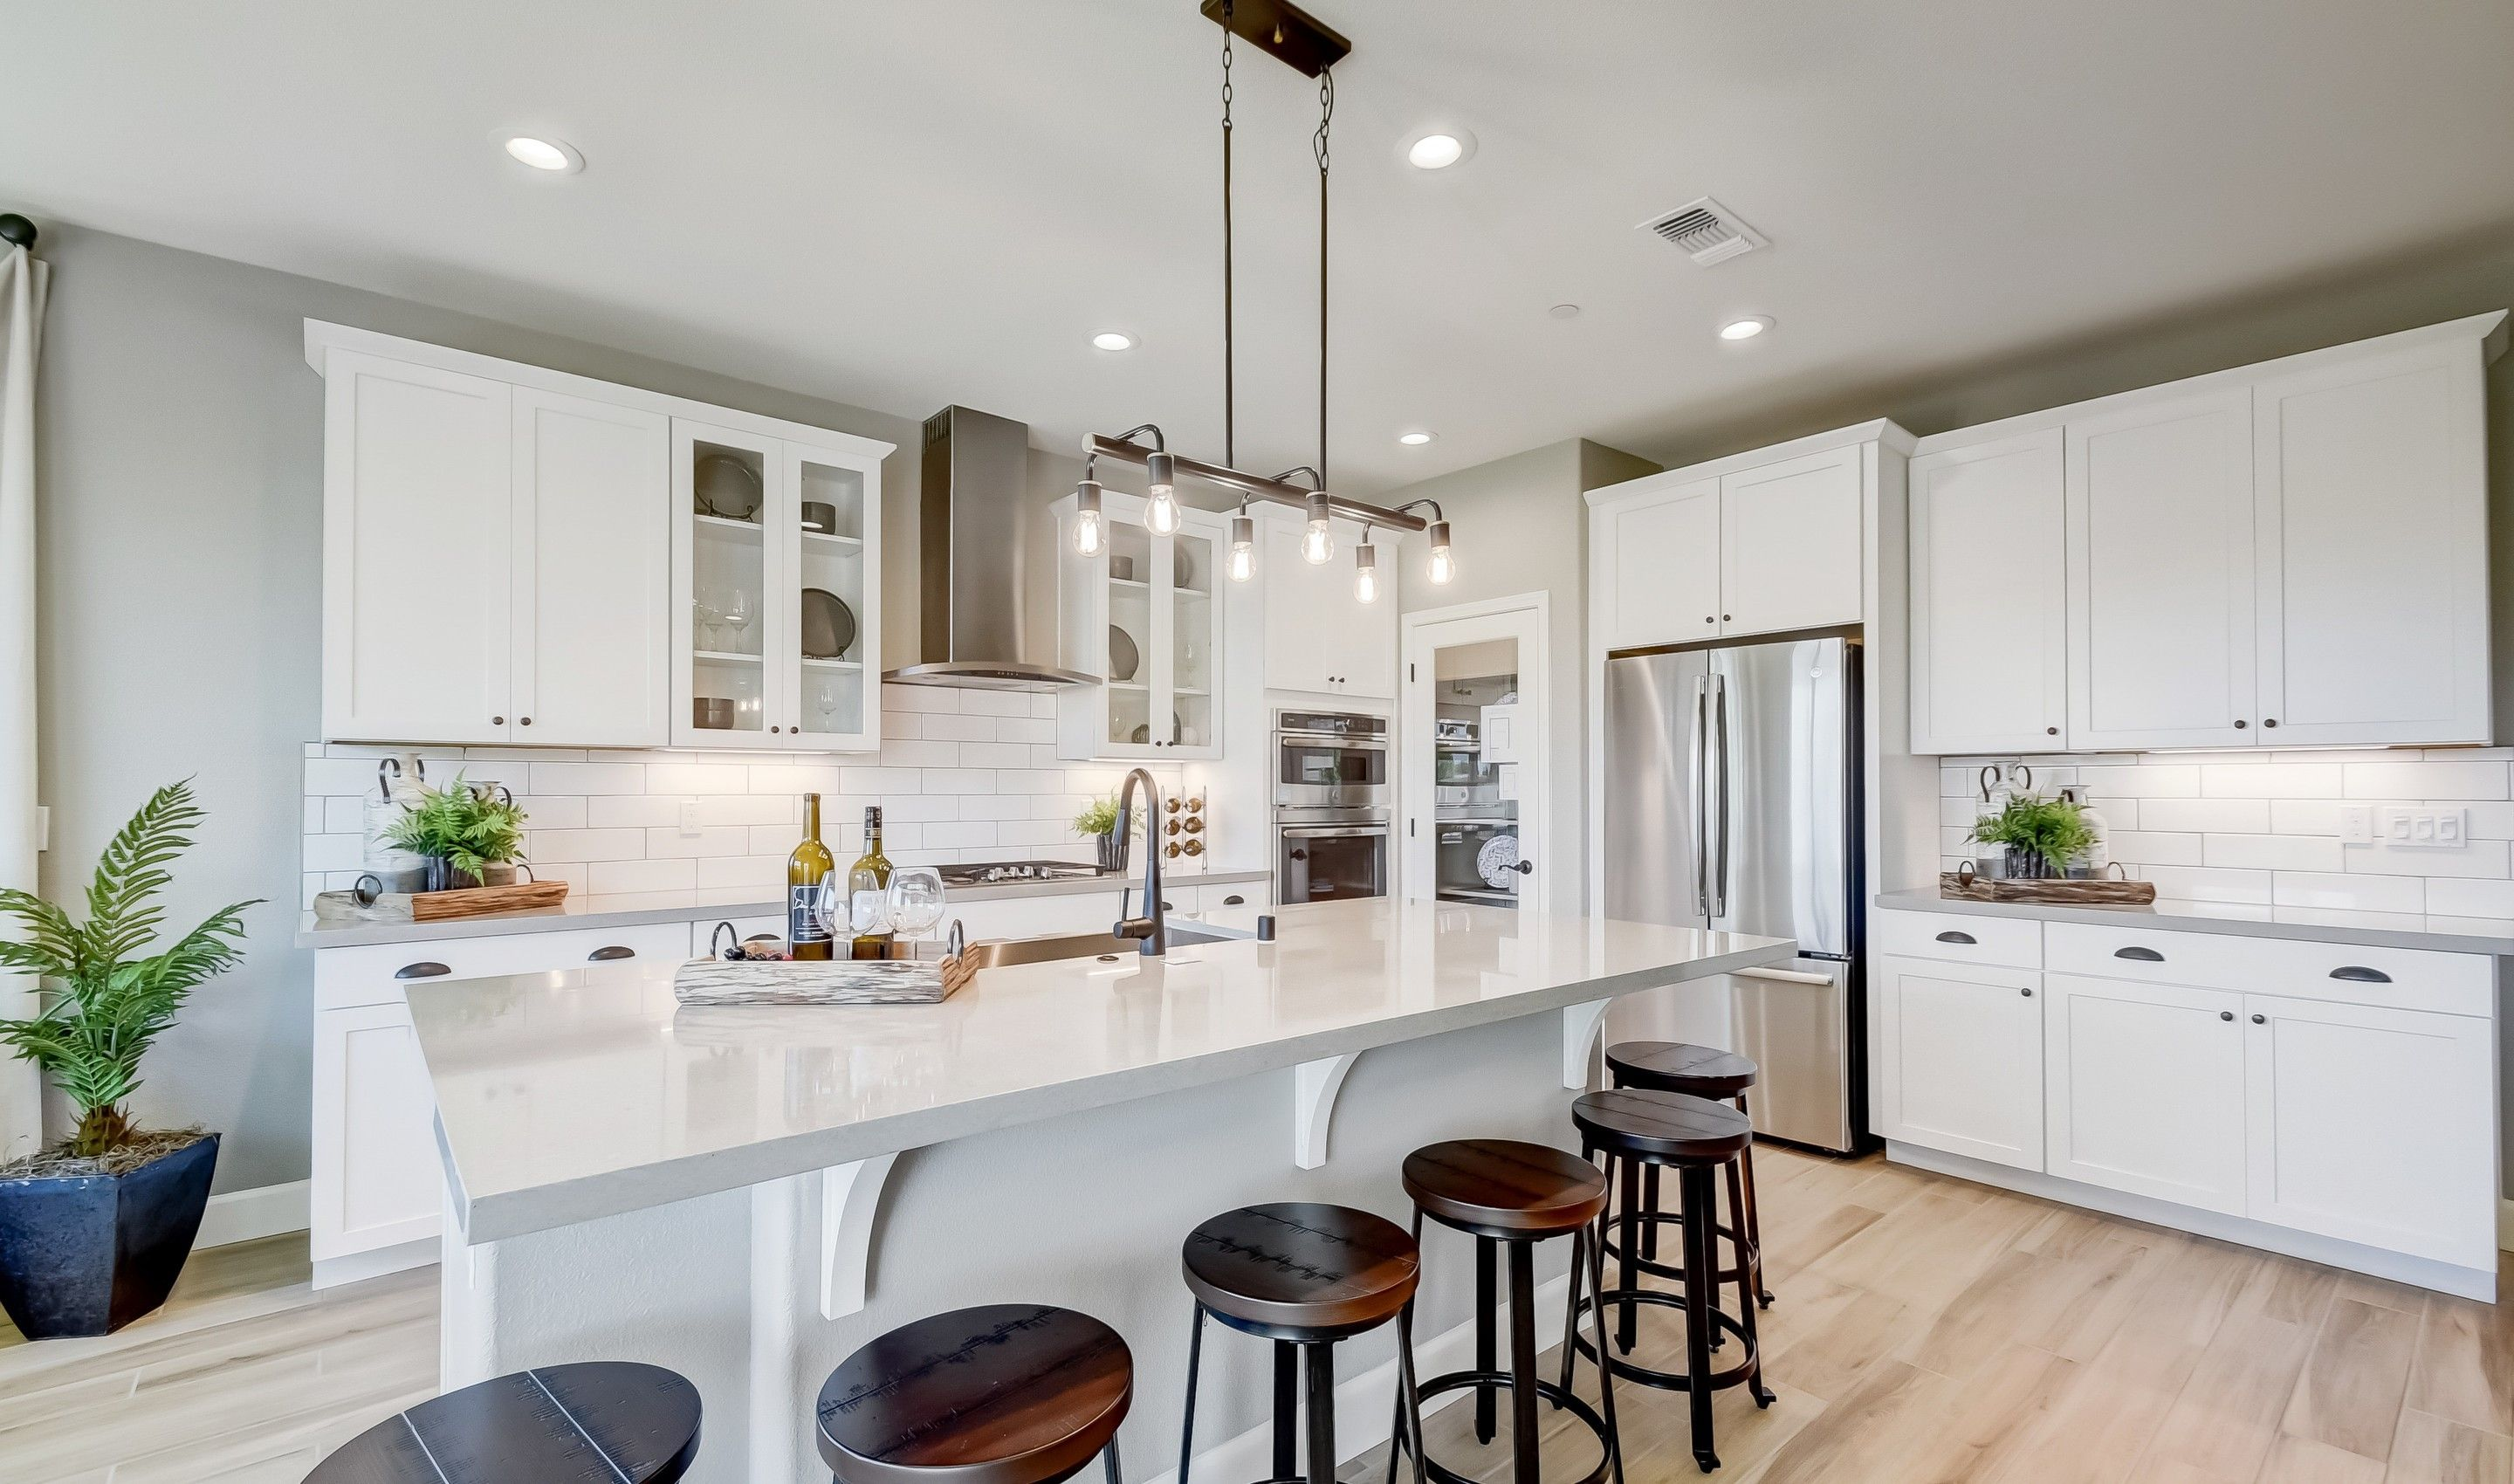 Kitchen featured in the Orchid By K. Hovnanian® Homes in Oakland-Alameda, CA